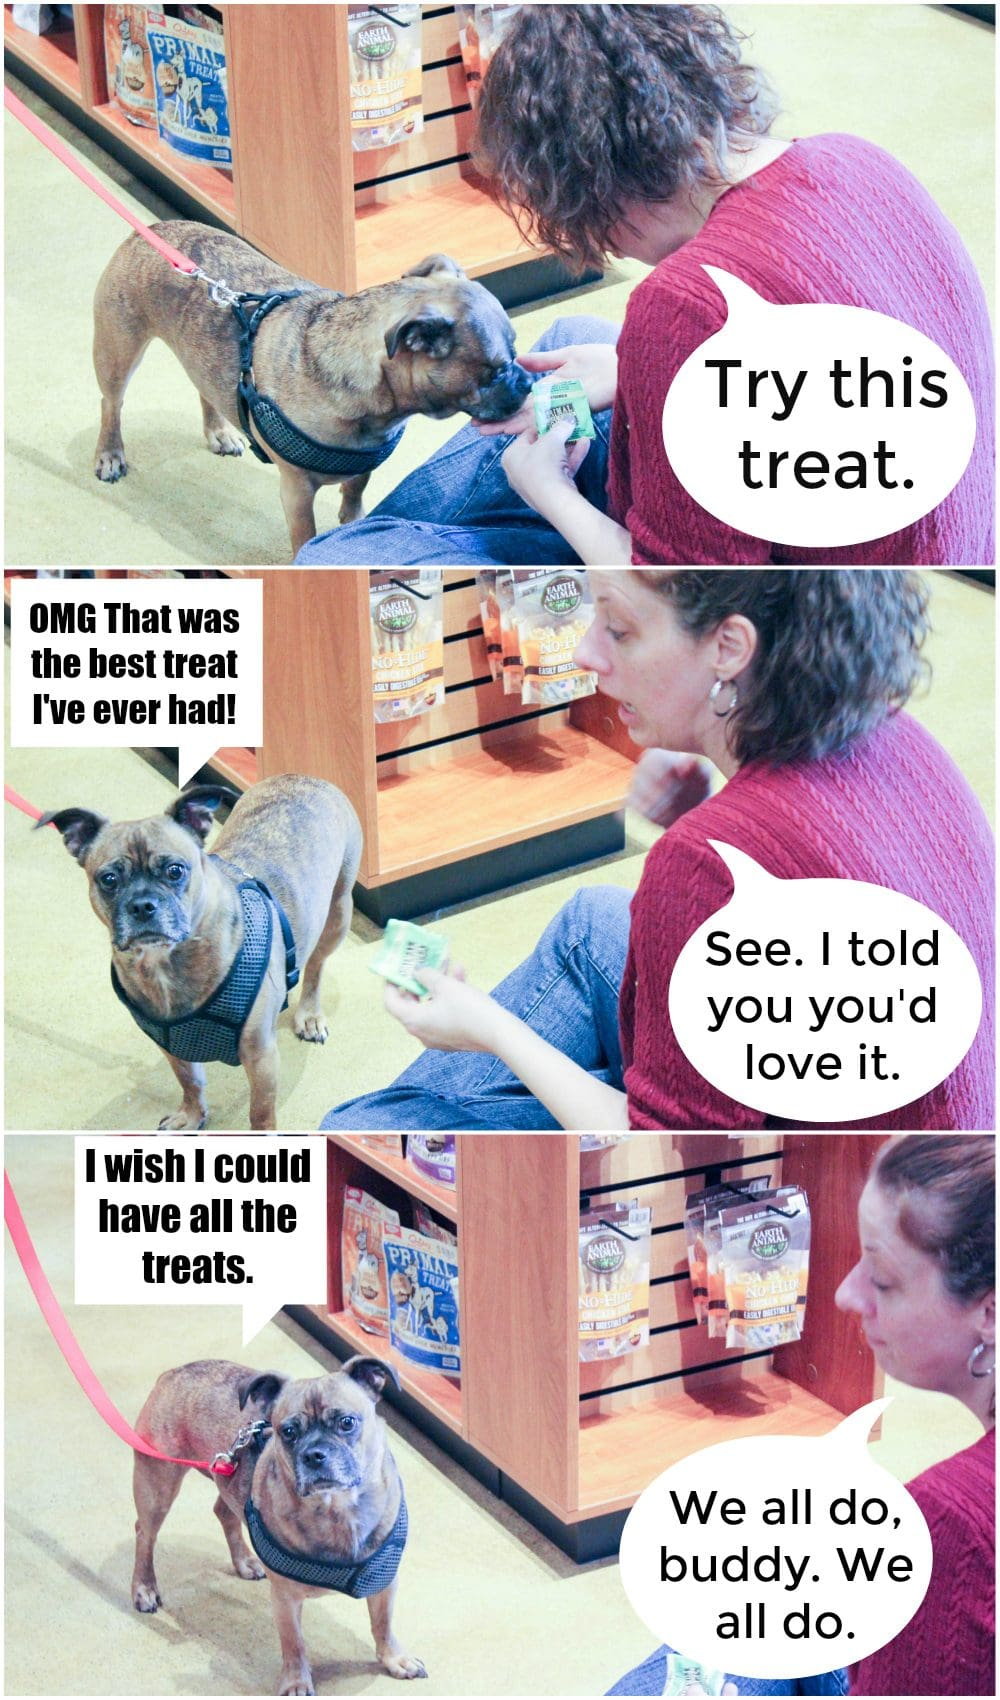 The Grump was given the best treat of his life at Kriser's Natural pet store. He made a new best friend.